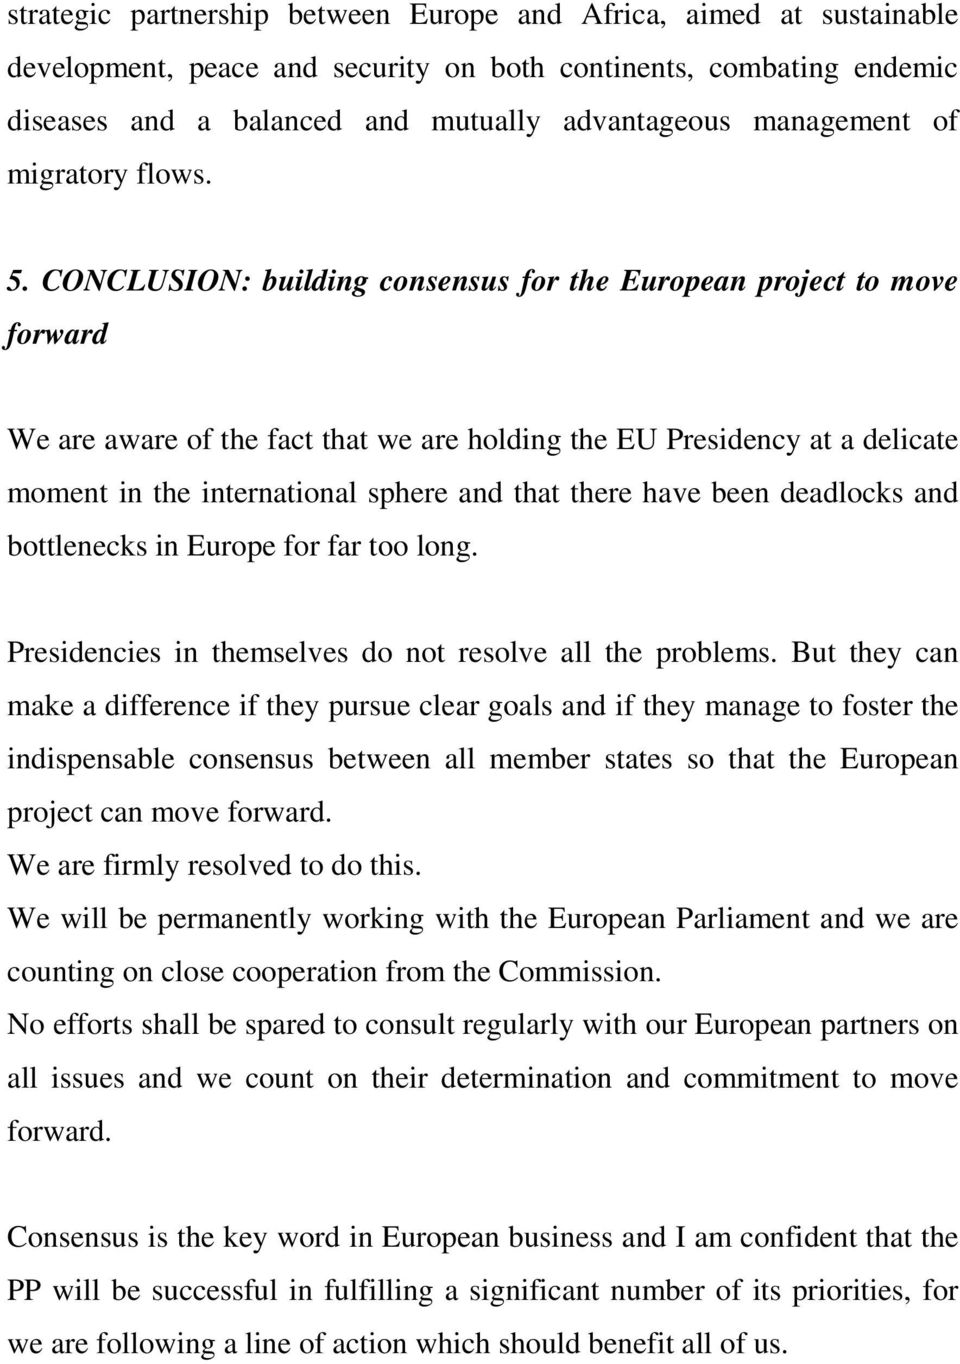 CONCLUSION: building consensus for the European project to move forward We are aware of the fact that we are holding the EU Presidency at a delicate moment in the international sphere and that there